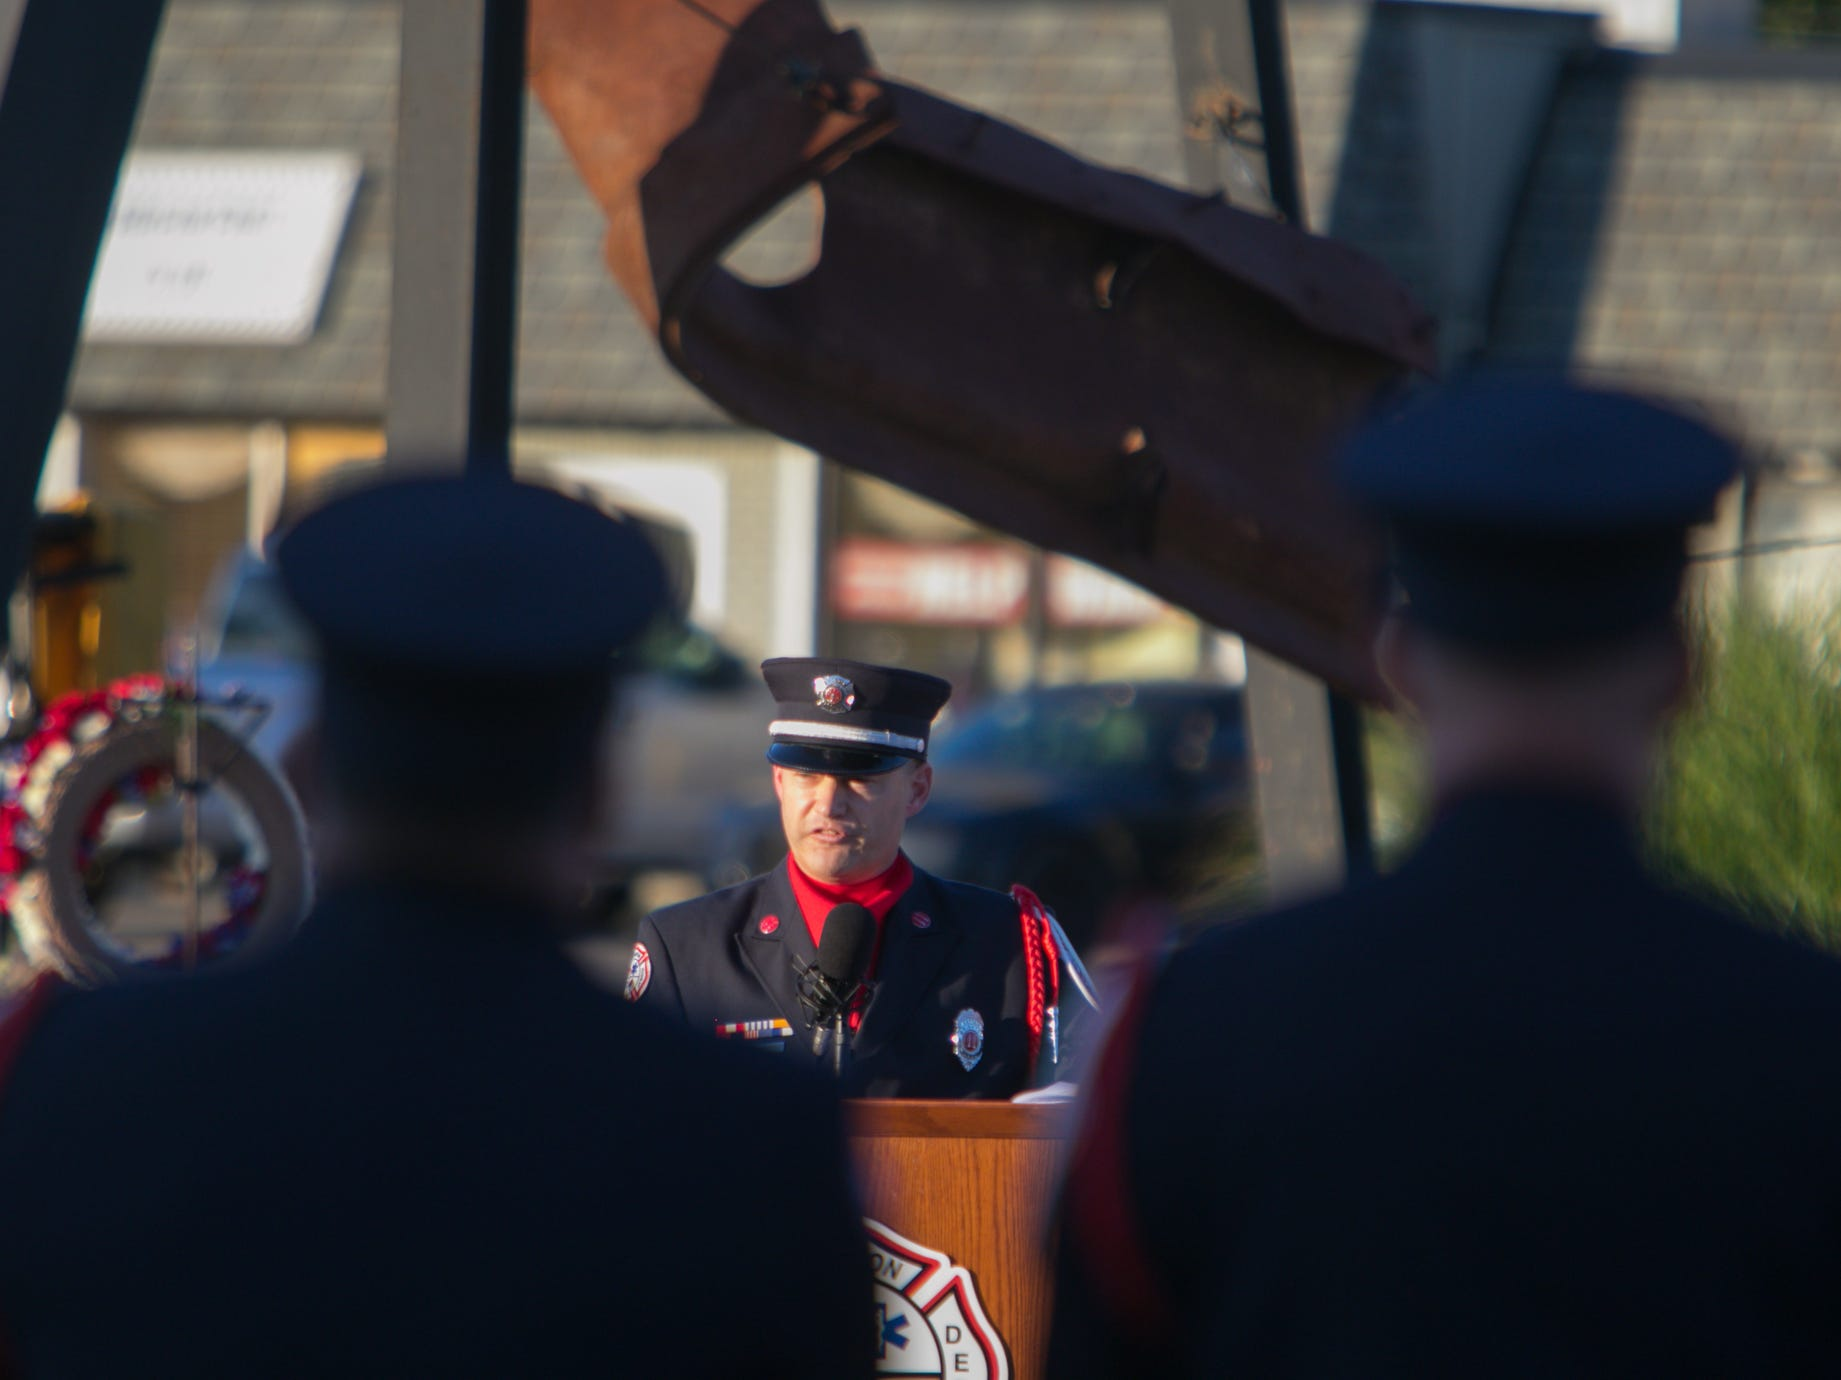 Brighton Area Fire Authority Capt. Greg Mowbray speaks at the 9/11 memorial ceremony Tuesday, Sept. 11, 2018.